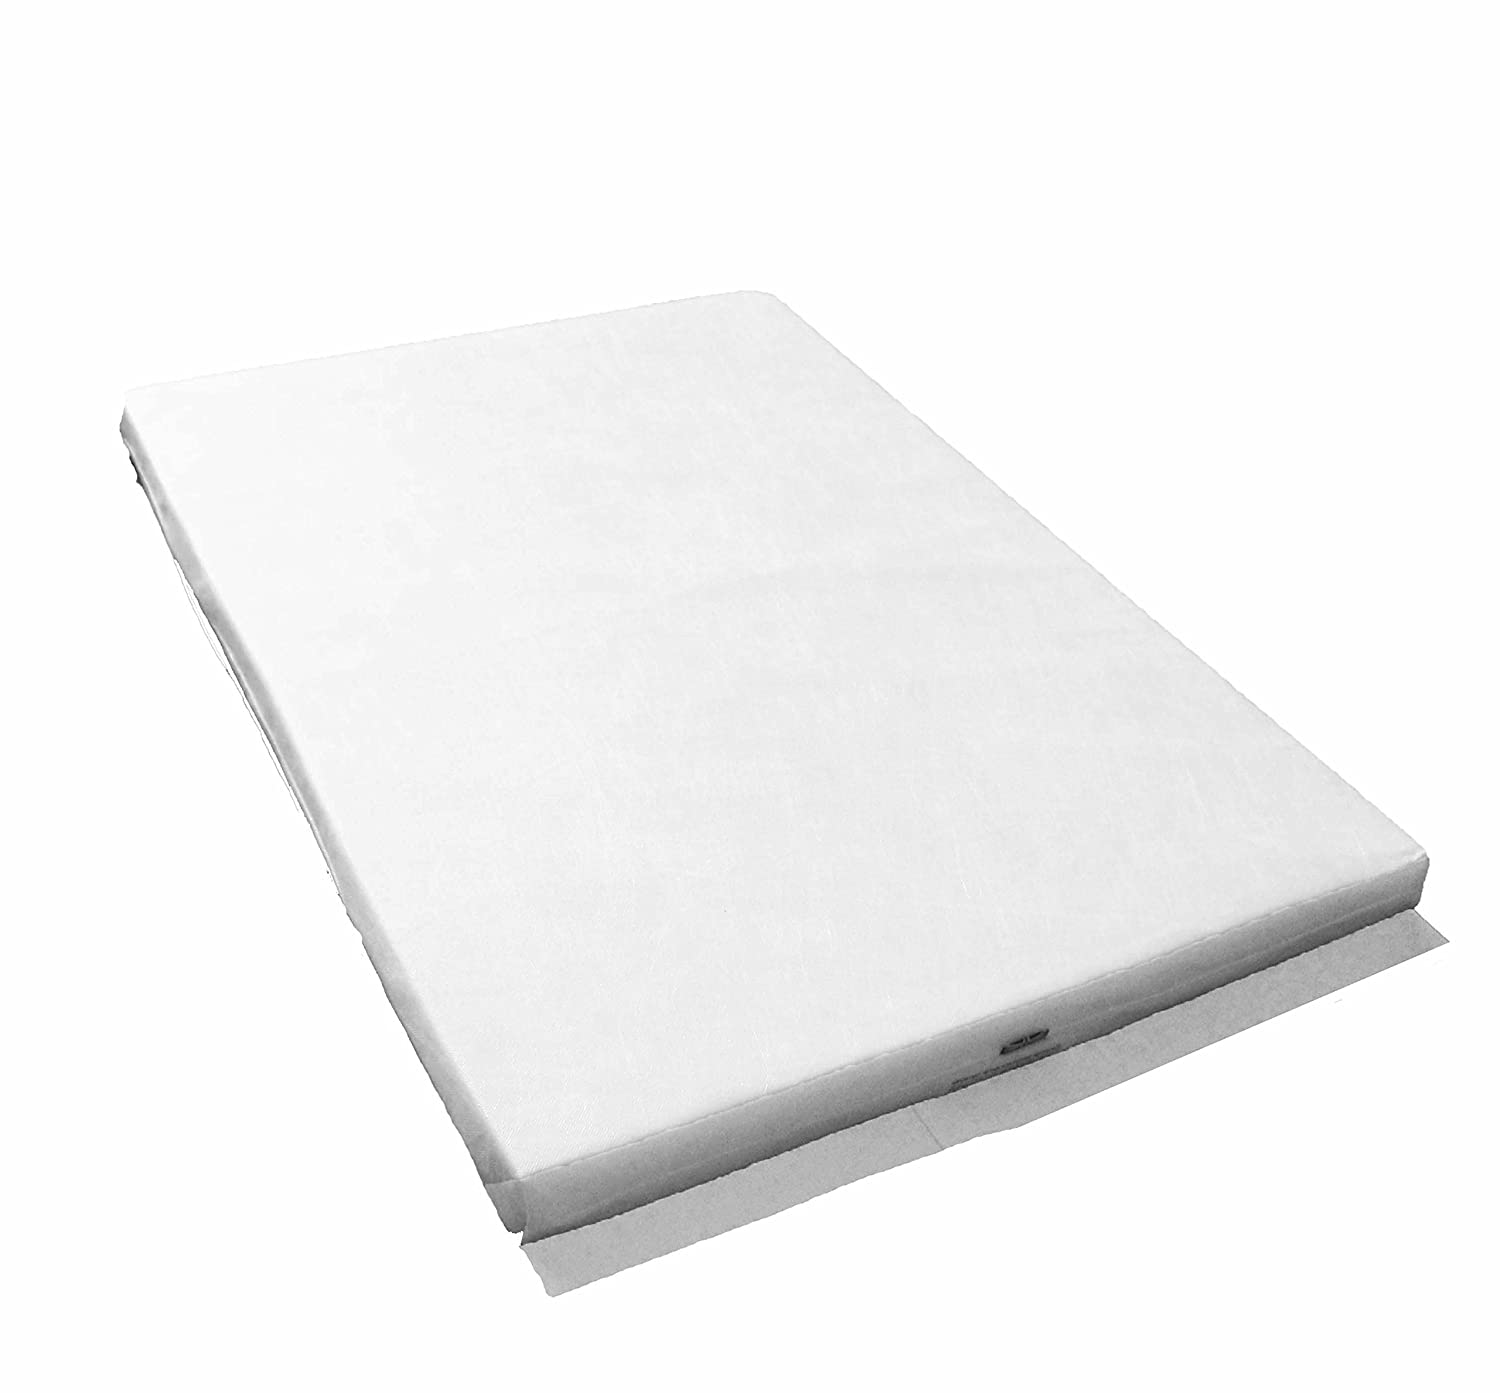 LAURA 95 x 65 x 5CM Thick Travel Cot Mattress - Will Fit Mamas & Papas Classic Travel Cot As Well As Other Makes: Reversible: BRITISH MADE With High Grade Density Foam CMHR28 LAURA-95-5